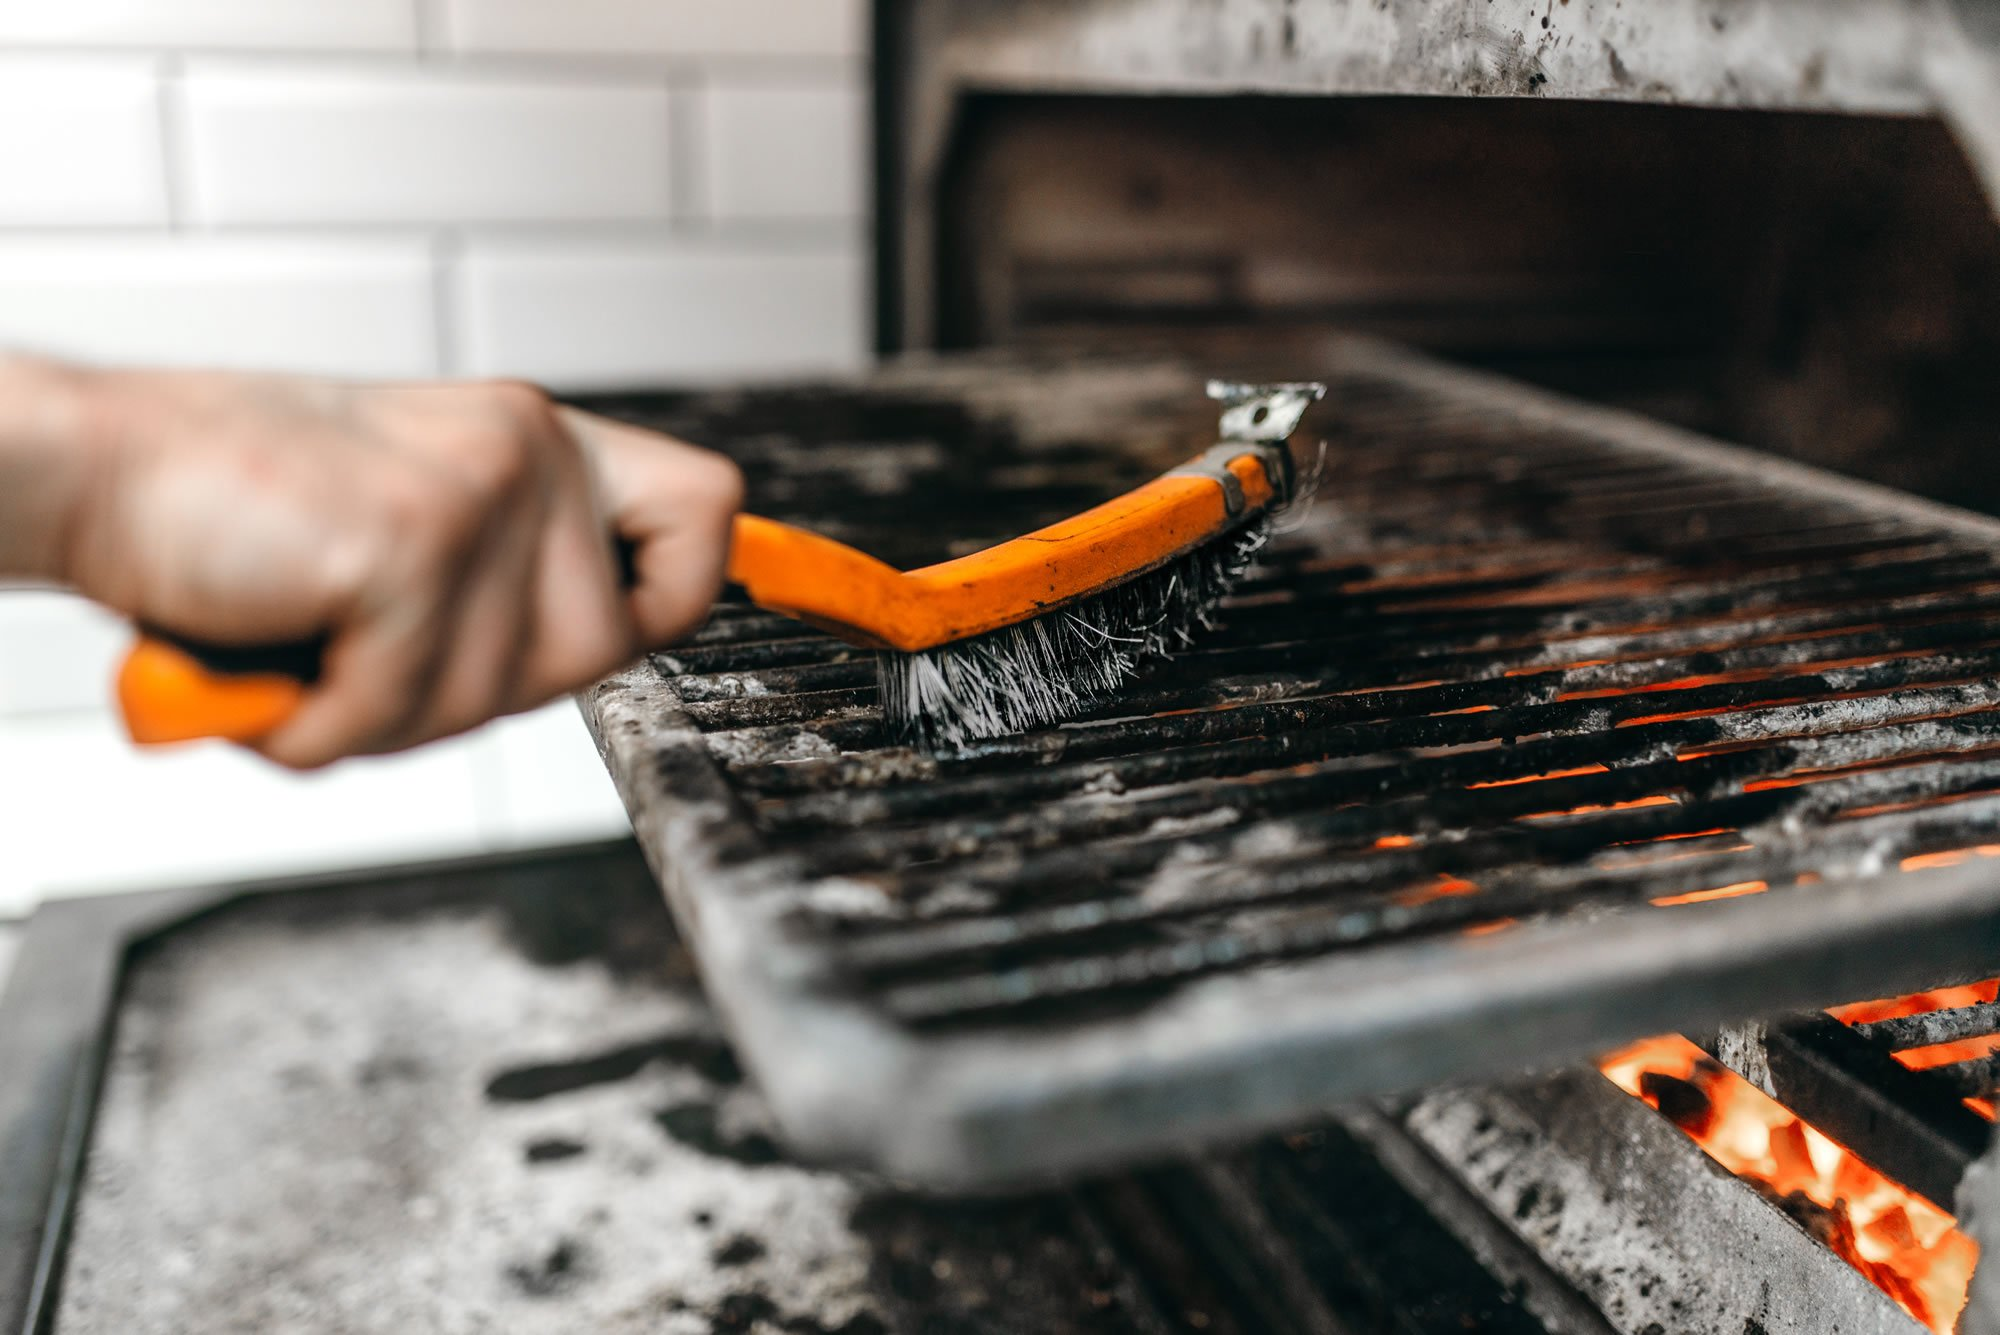 How Do I Clean & Maintain My Grill? The Ultimate Grill Cleaning Guide.